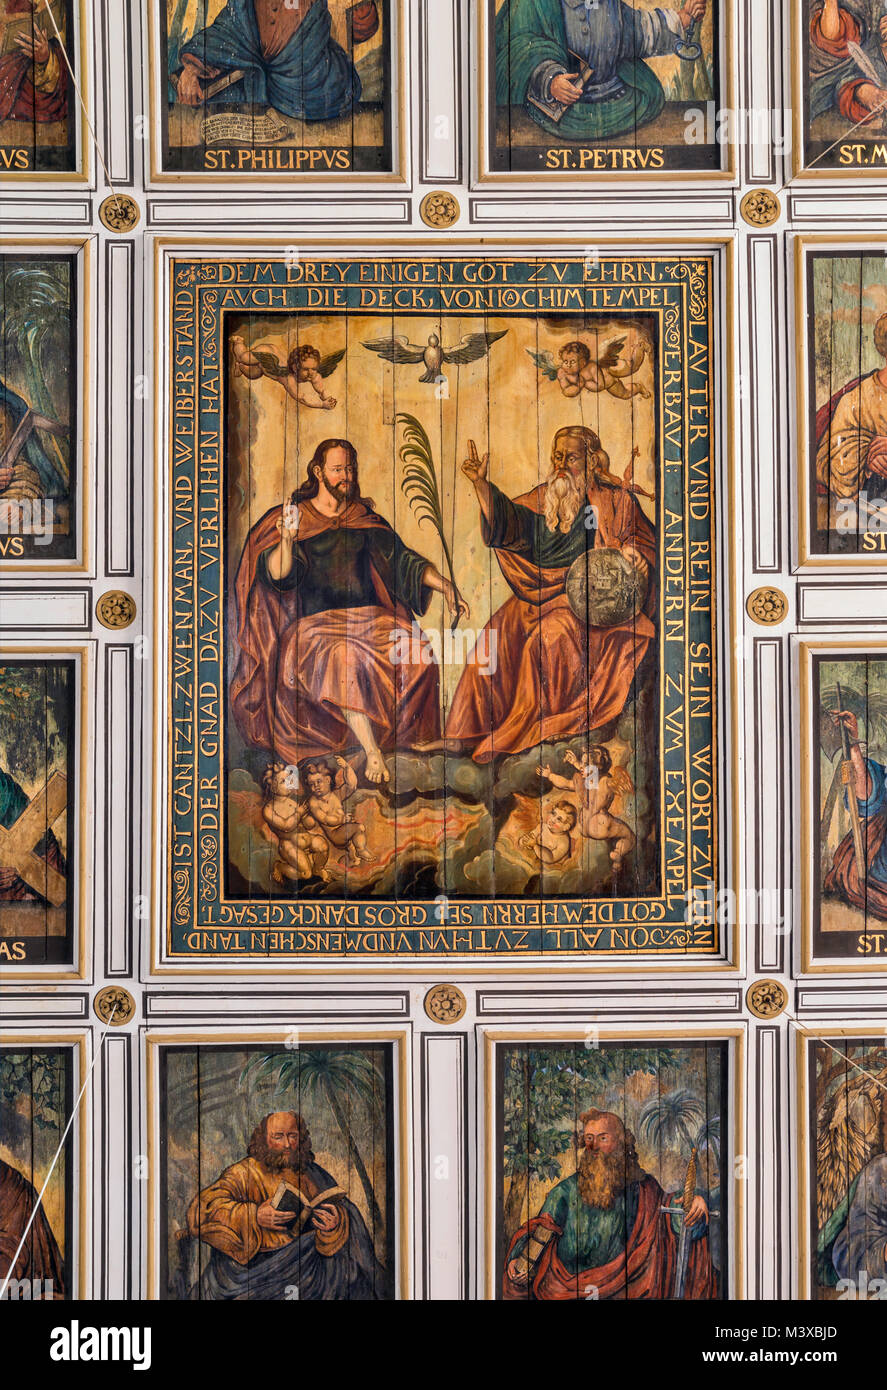 Holy Trinity painting on ceiling at St Annekirche (Church of St Anne) in Lutherstadt Eisleben, Saxony-Anhalt, Germany - Stock Image